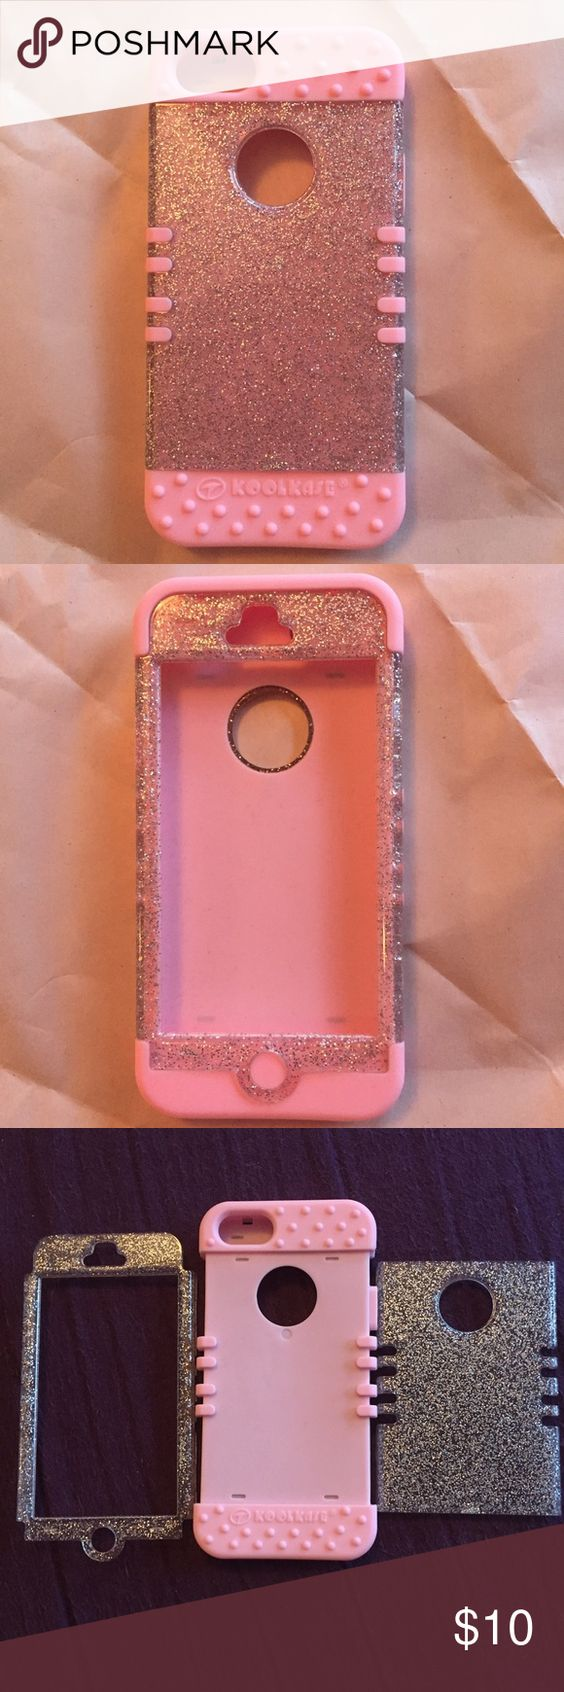 Koolkase iphone 5 light pink glitter Light pink with silver glitter. The skins are interchangeable. If you would like to mix and match with any other cases that I have please comment. Accessories Phone Cases